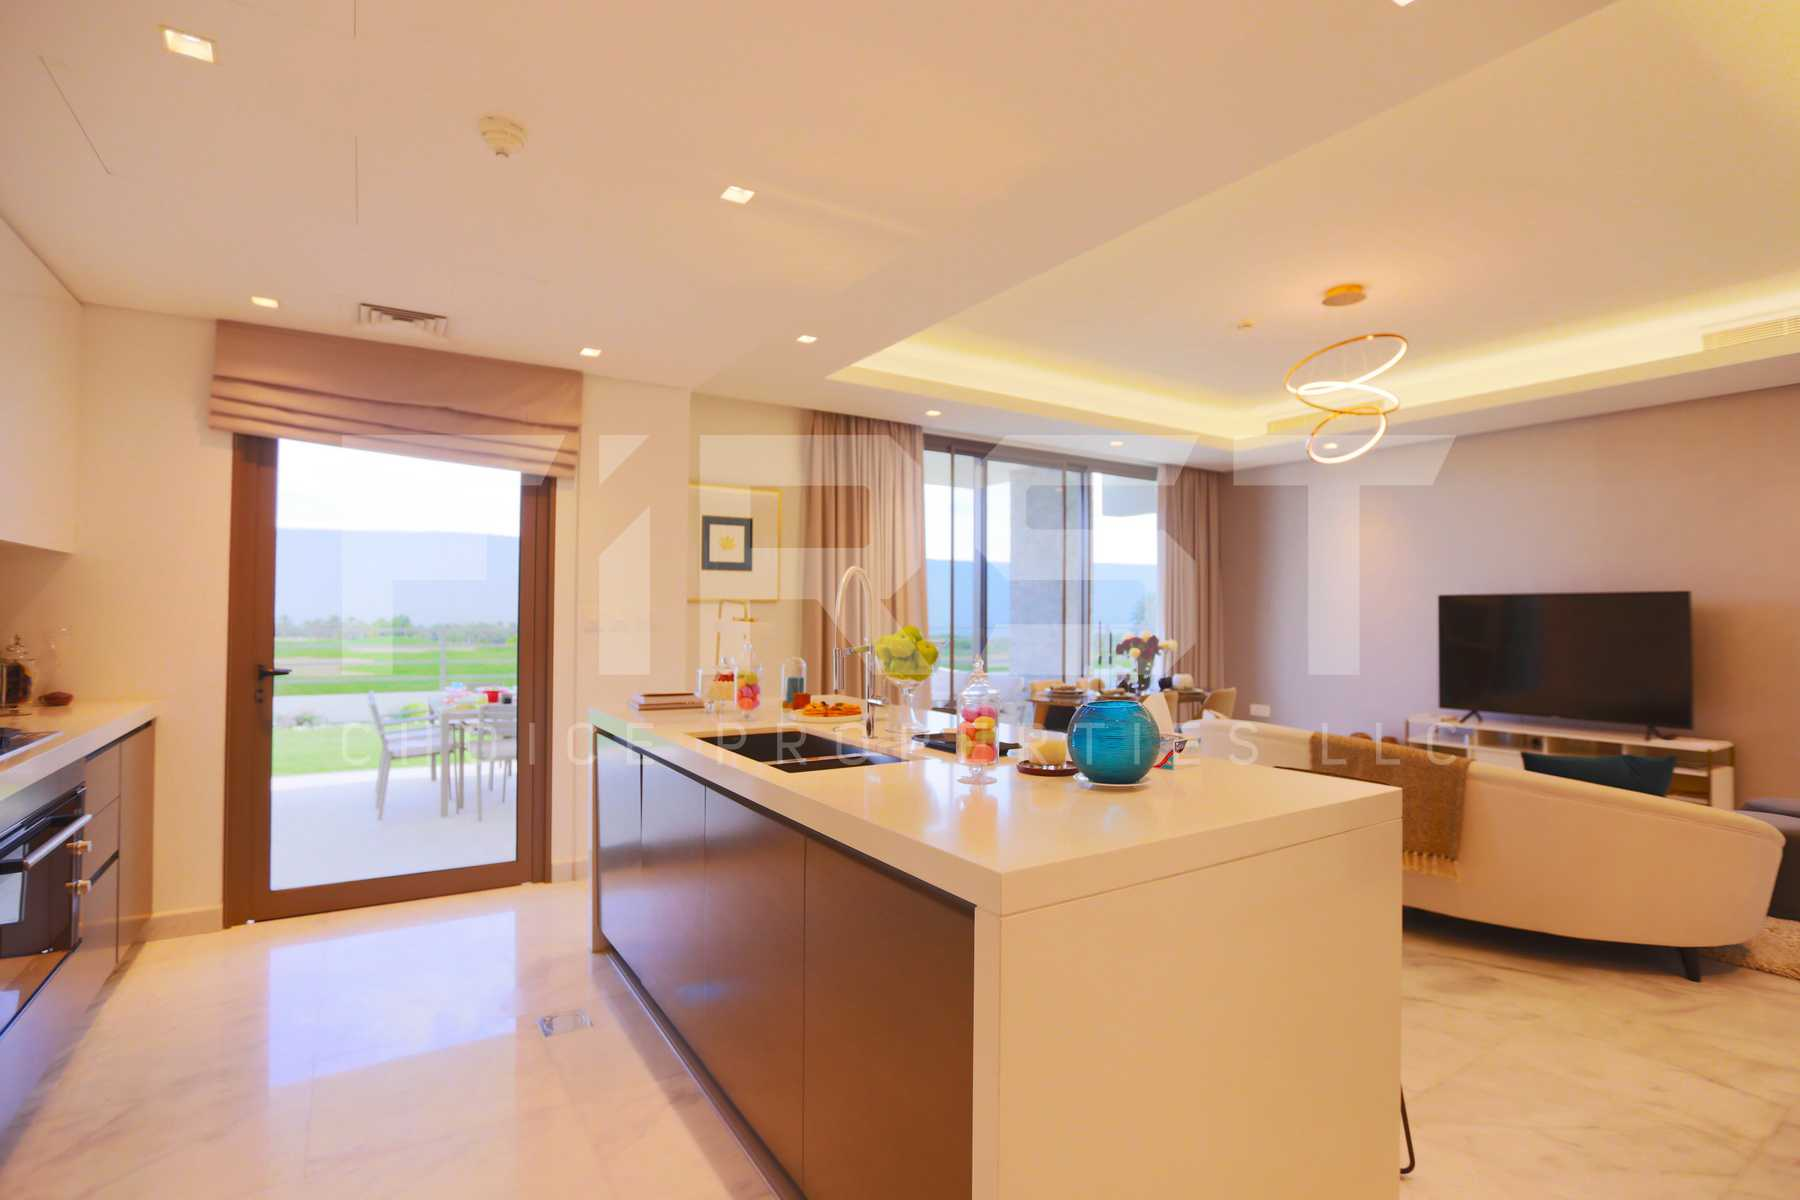 Internal Photo of 4 Bedroom Villa Type 4F in Yas Acres Yas Island Abu Dhabi UAE (19).jpg